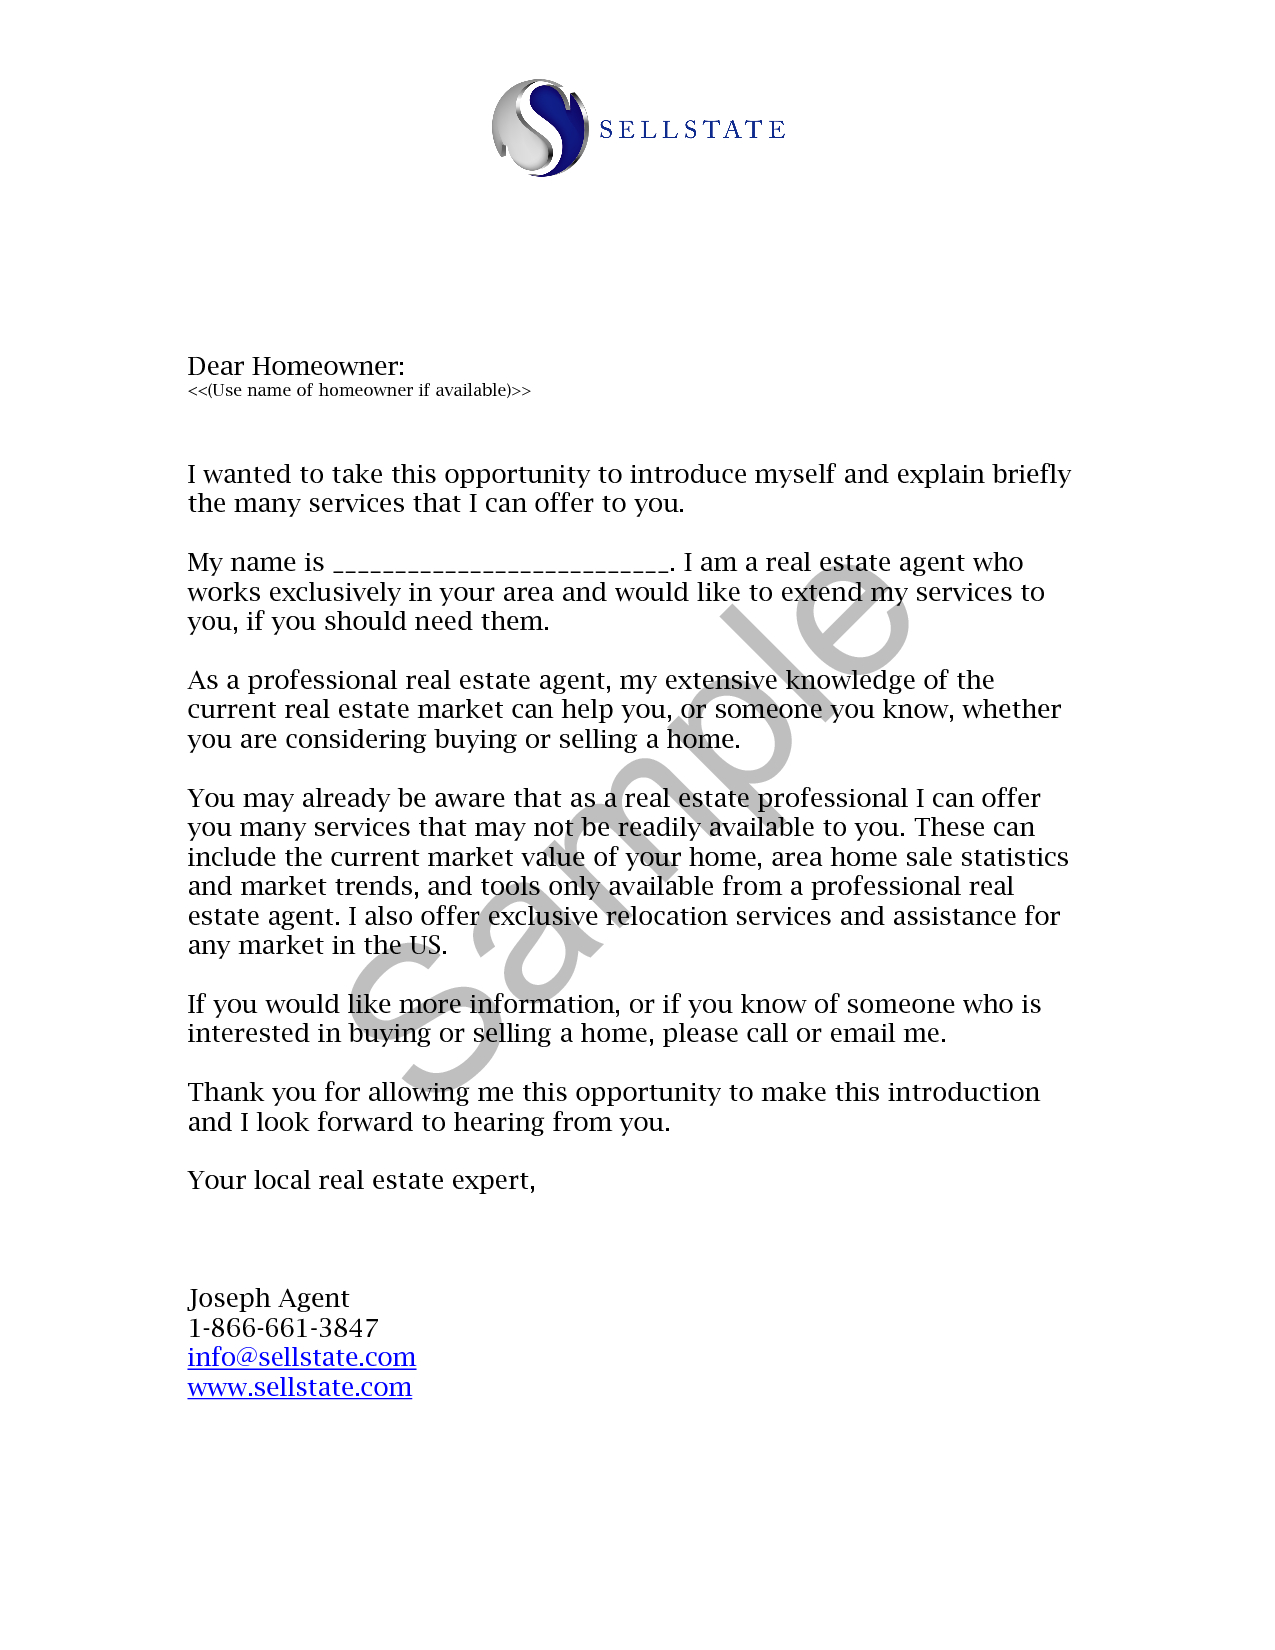 Fsbo Letter Template Collection Letter Template Collection